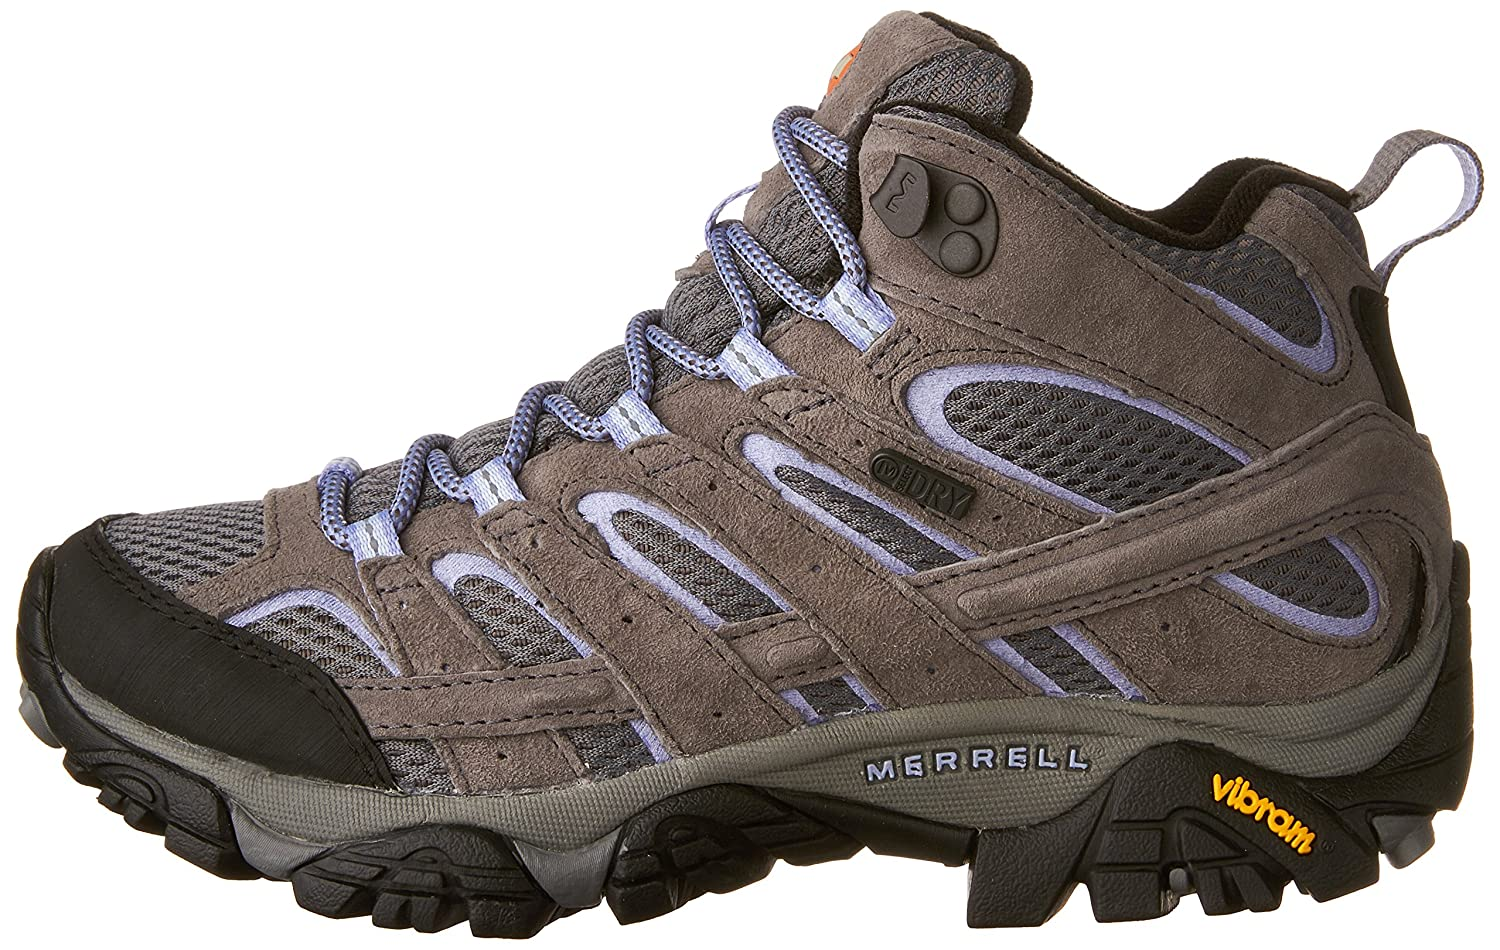 Merrell Women's Moab 2 Mid Waterproof Hiking Boot B01MU2WKMC 8.5 B(M) US|Grey/Periwinkle